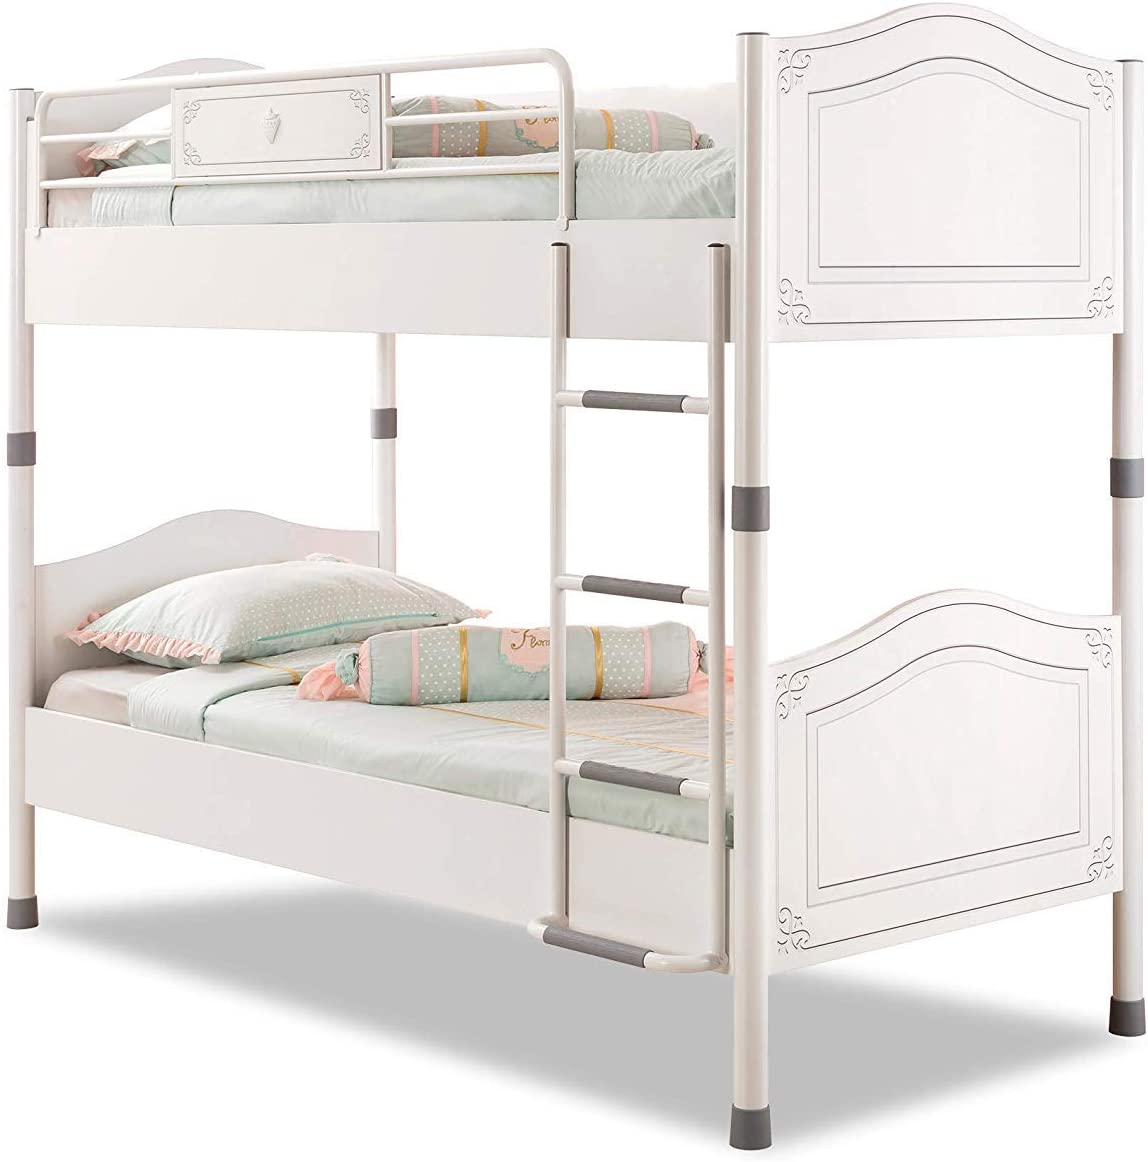 Dafnedesign Com Bunk Bed Or Baby Girl S Room It Goes To A Room Is Modern And Elegant Design A Bunk Bed With Headboards And Tastefully Decorated Bar Can Be